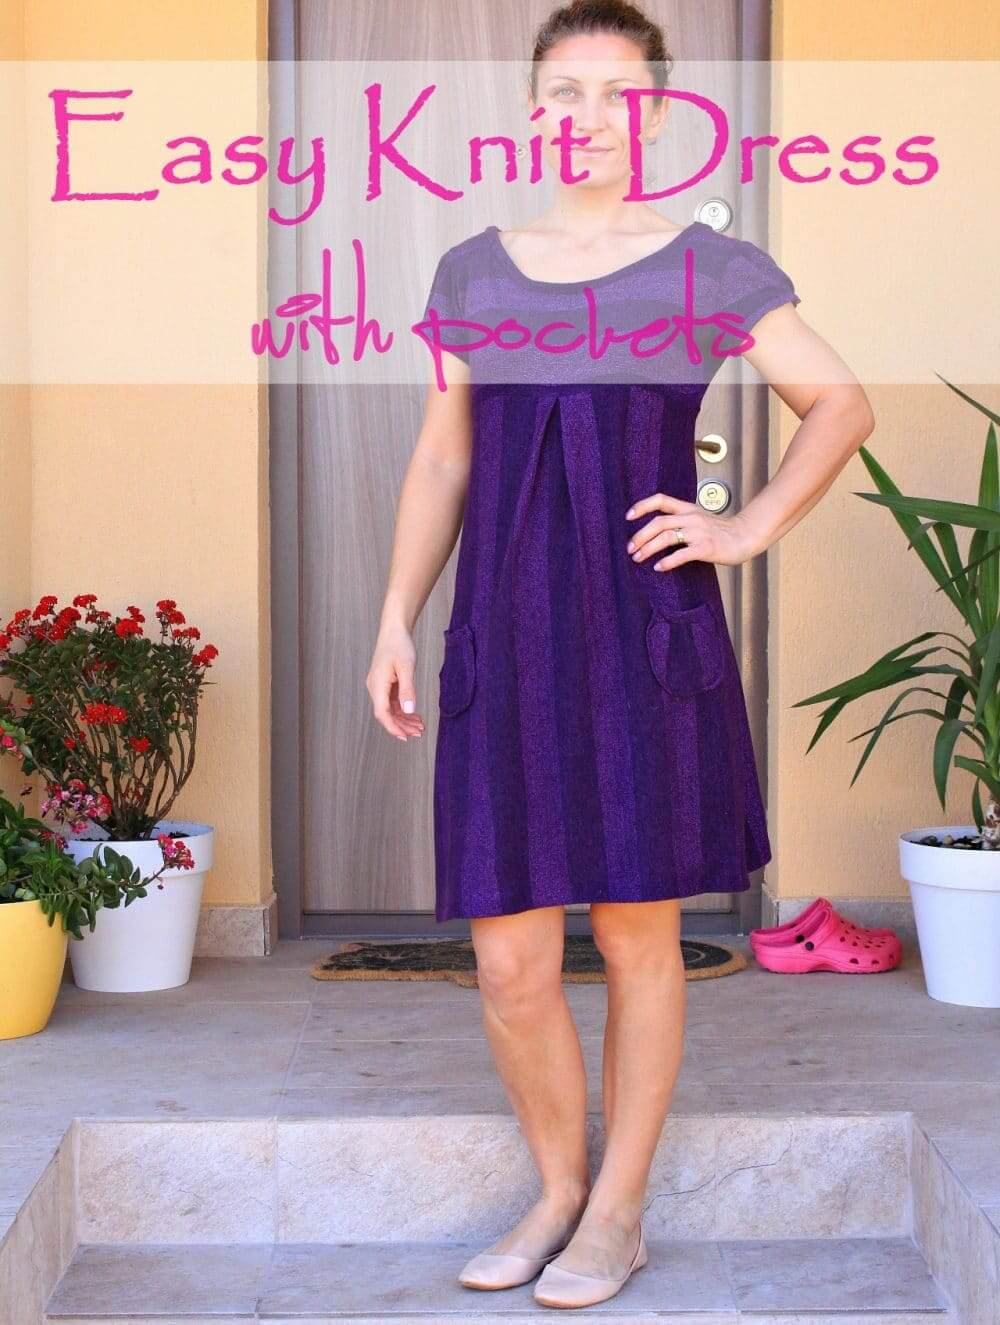 EASY KNIT DRESS WITH POCKETS from Creative Homemaking